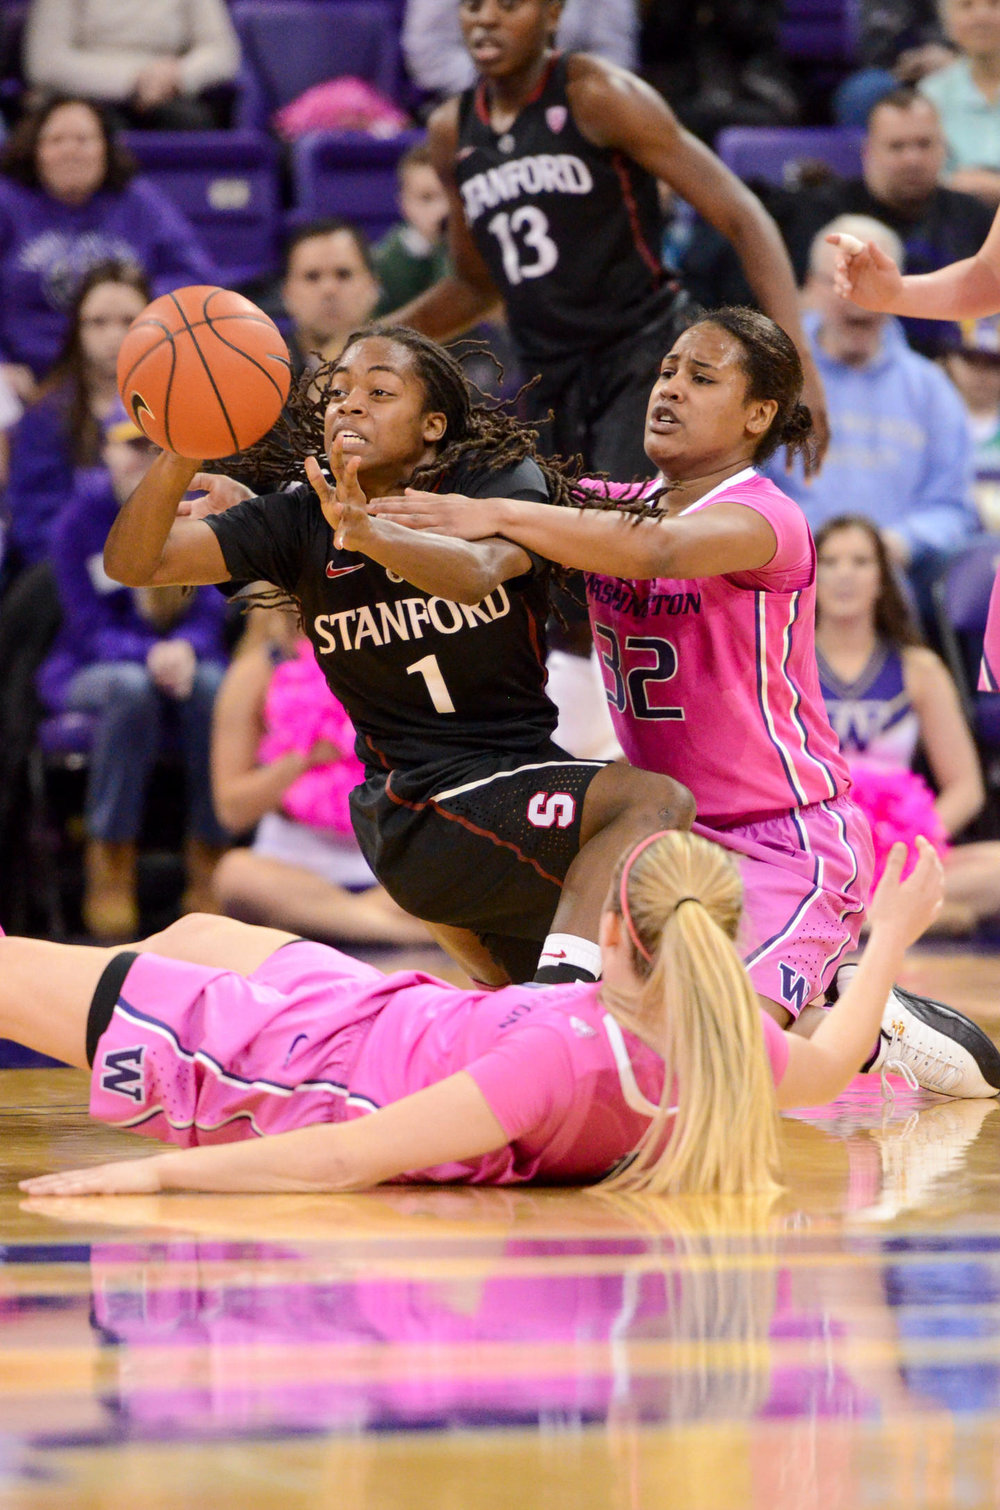 University of Washington Huskies Women's Basketball Point Guard Jazmine Davis Fighting for Ball